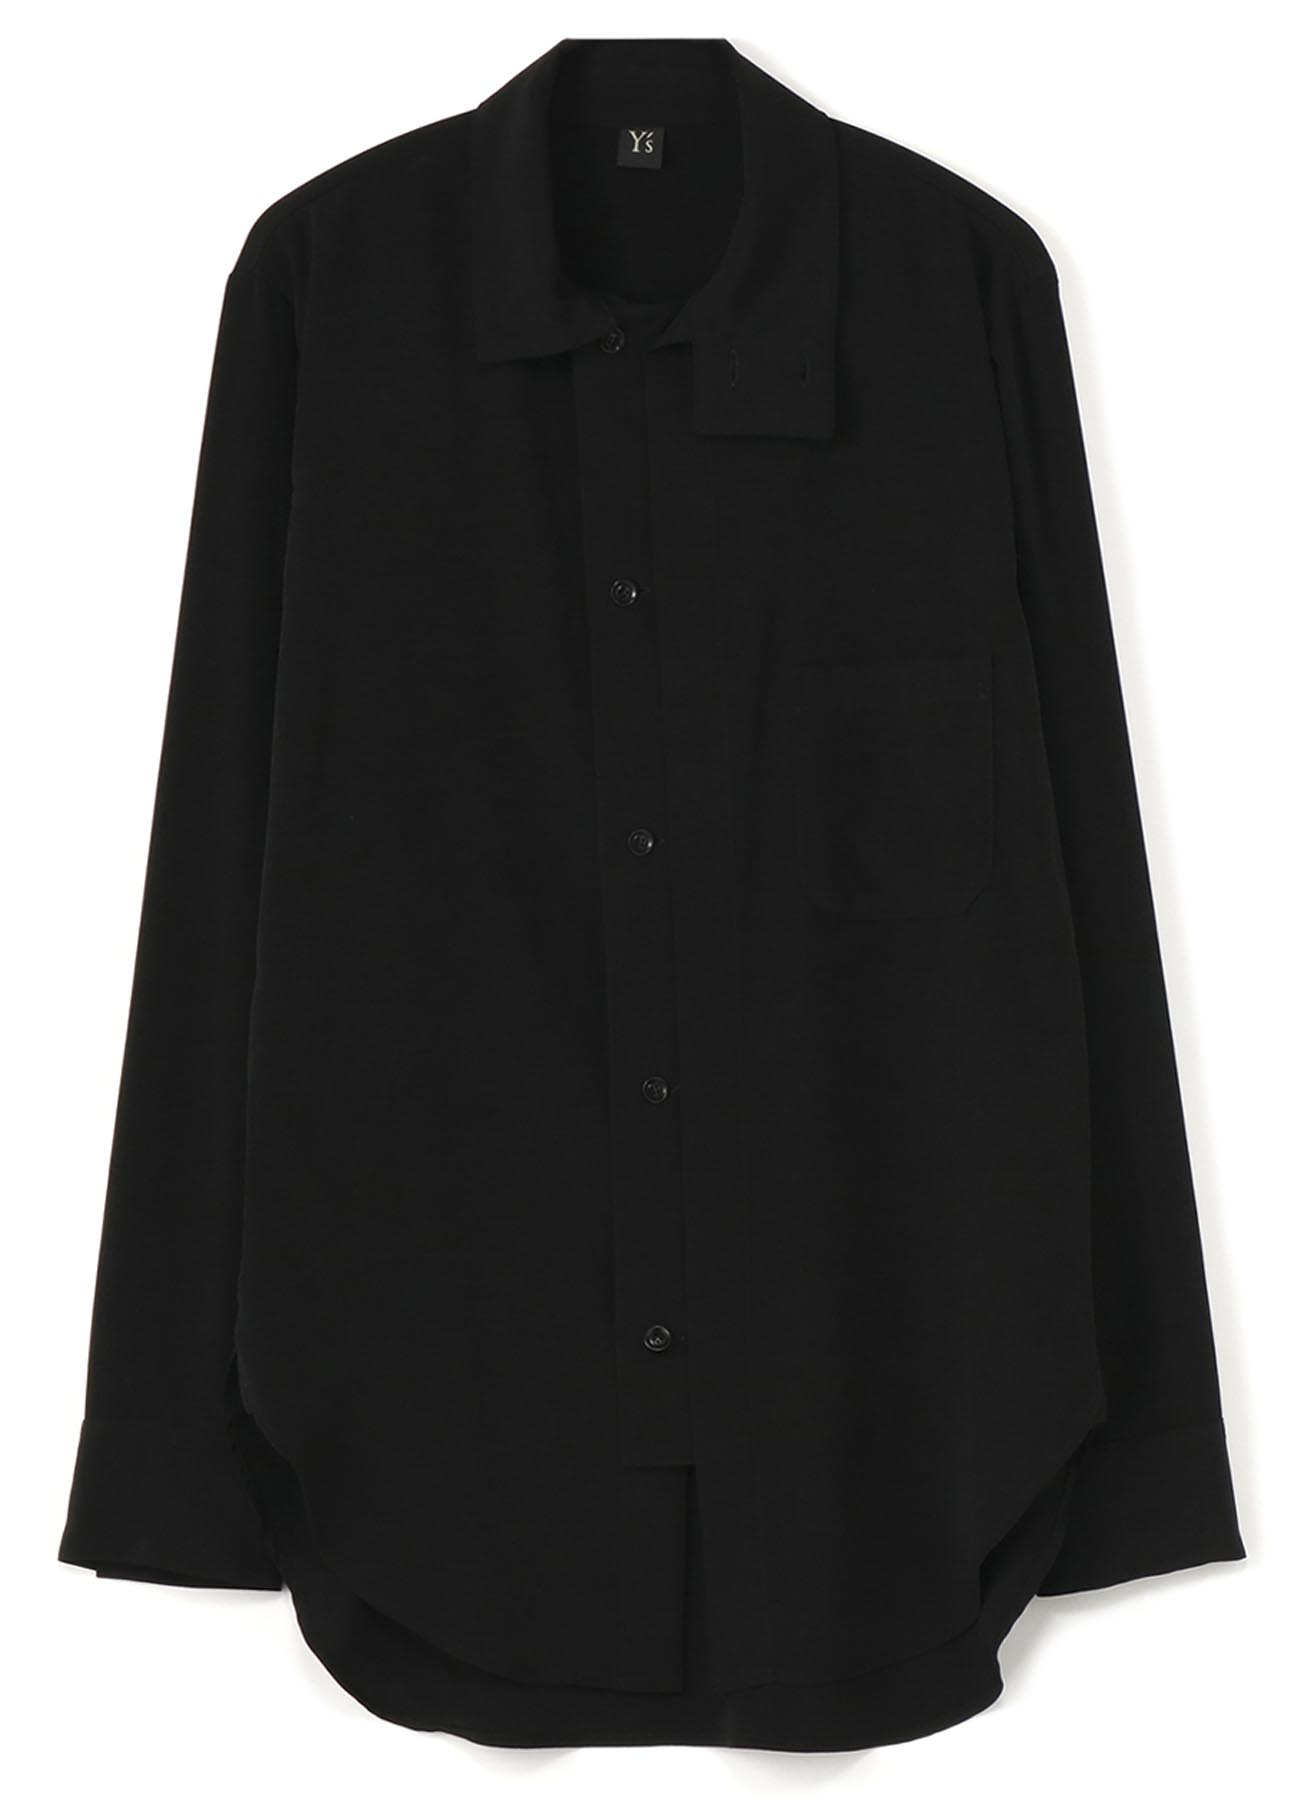 DECYNE FRONT OPEN SQUARE BLOUSE